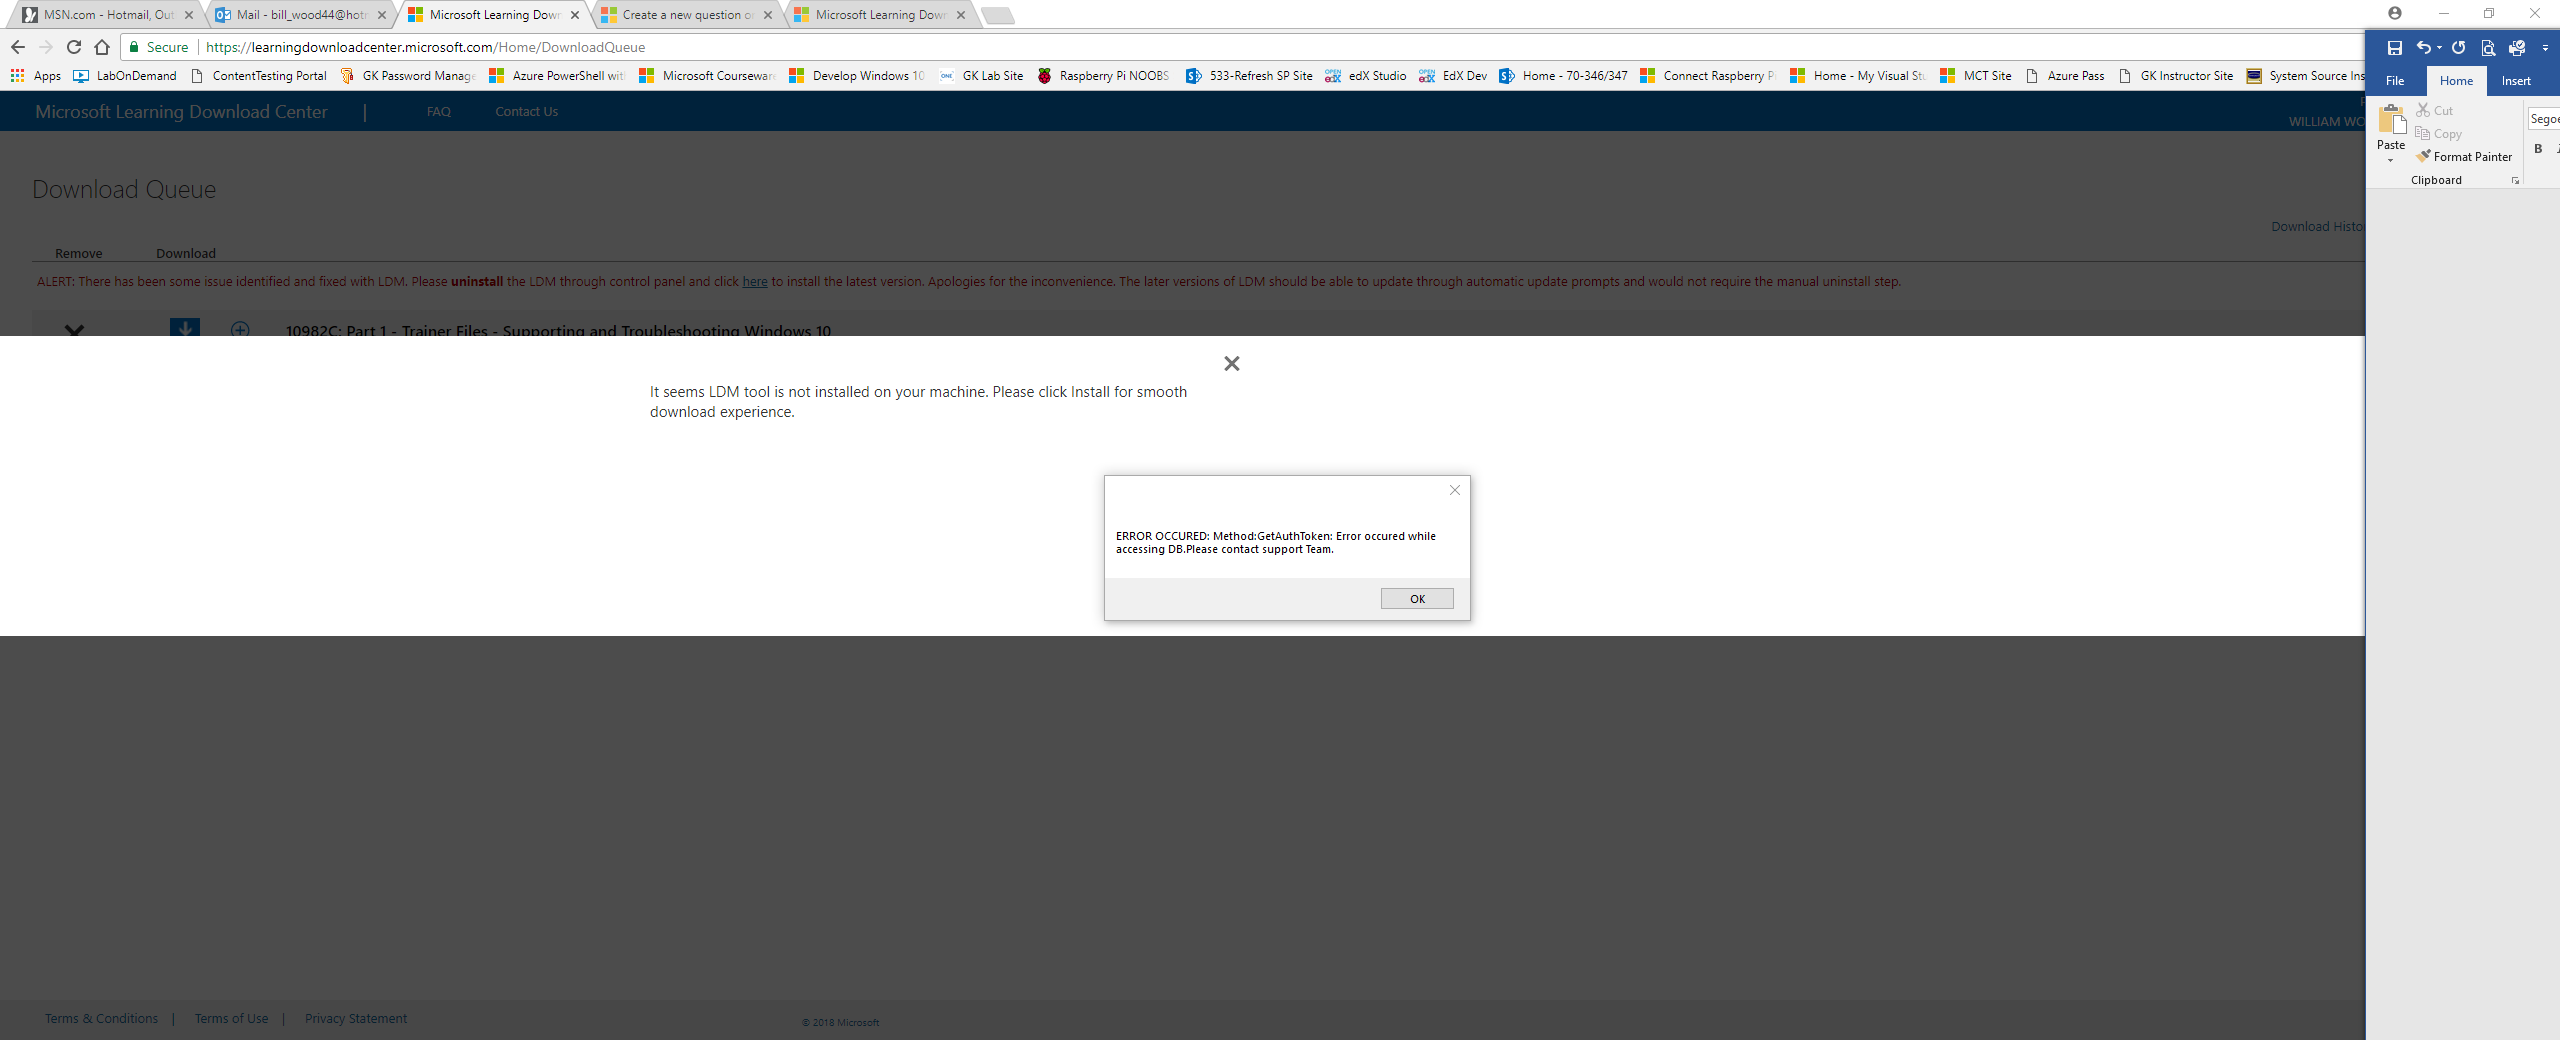 I Am Getting An Error When Trying To Download Courses From The